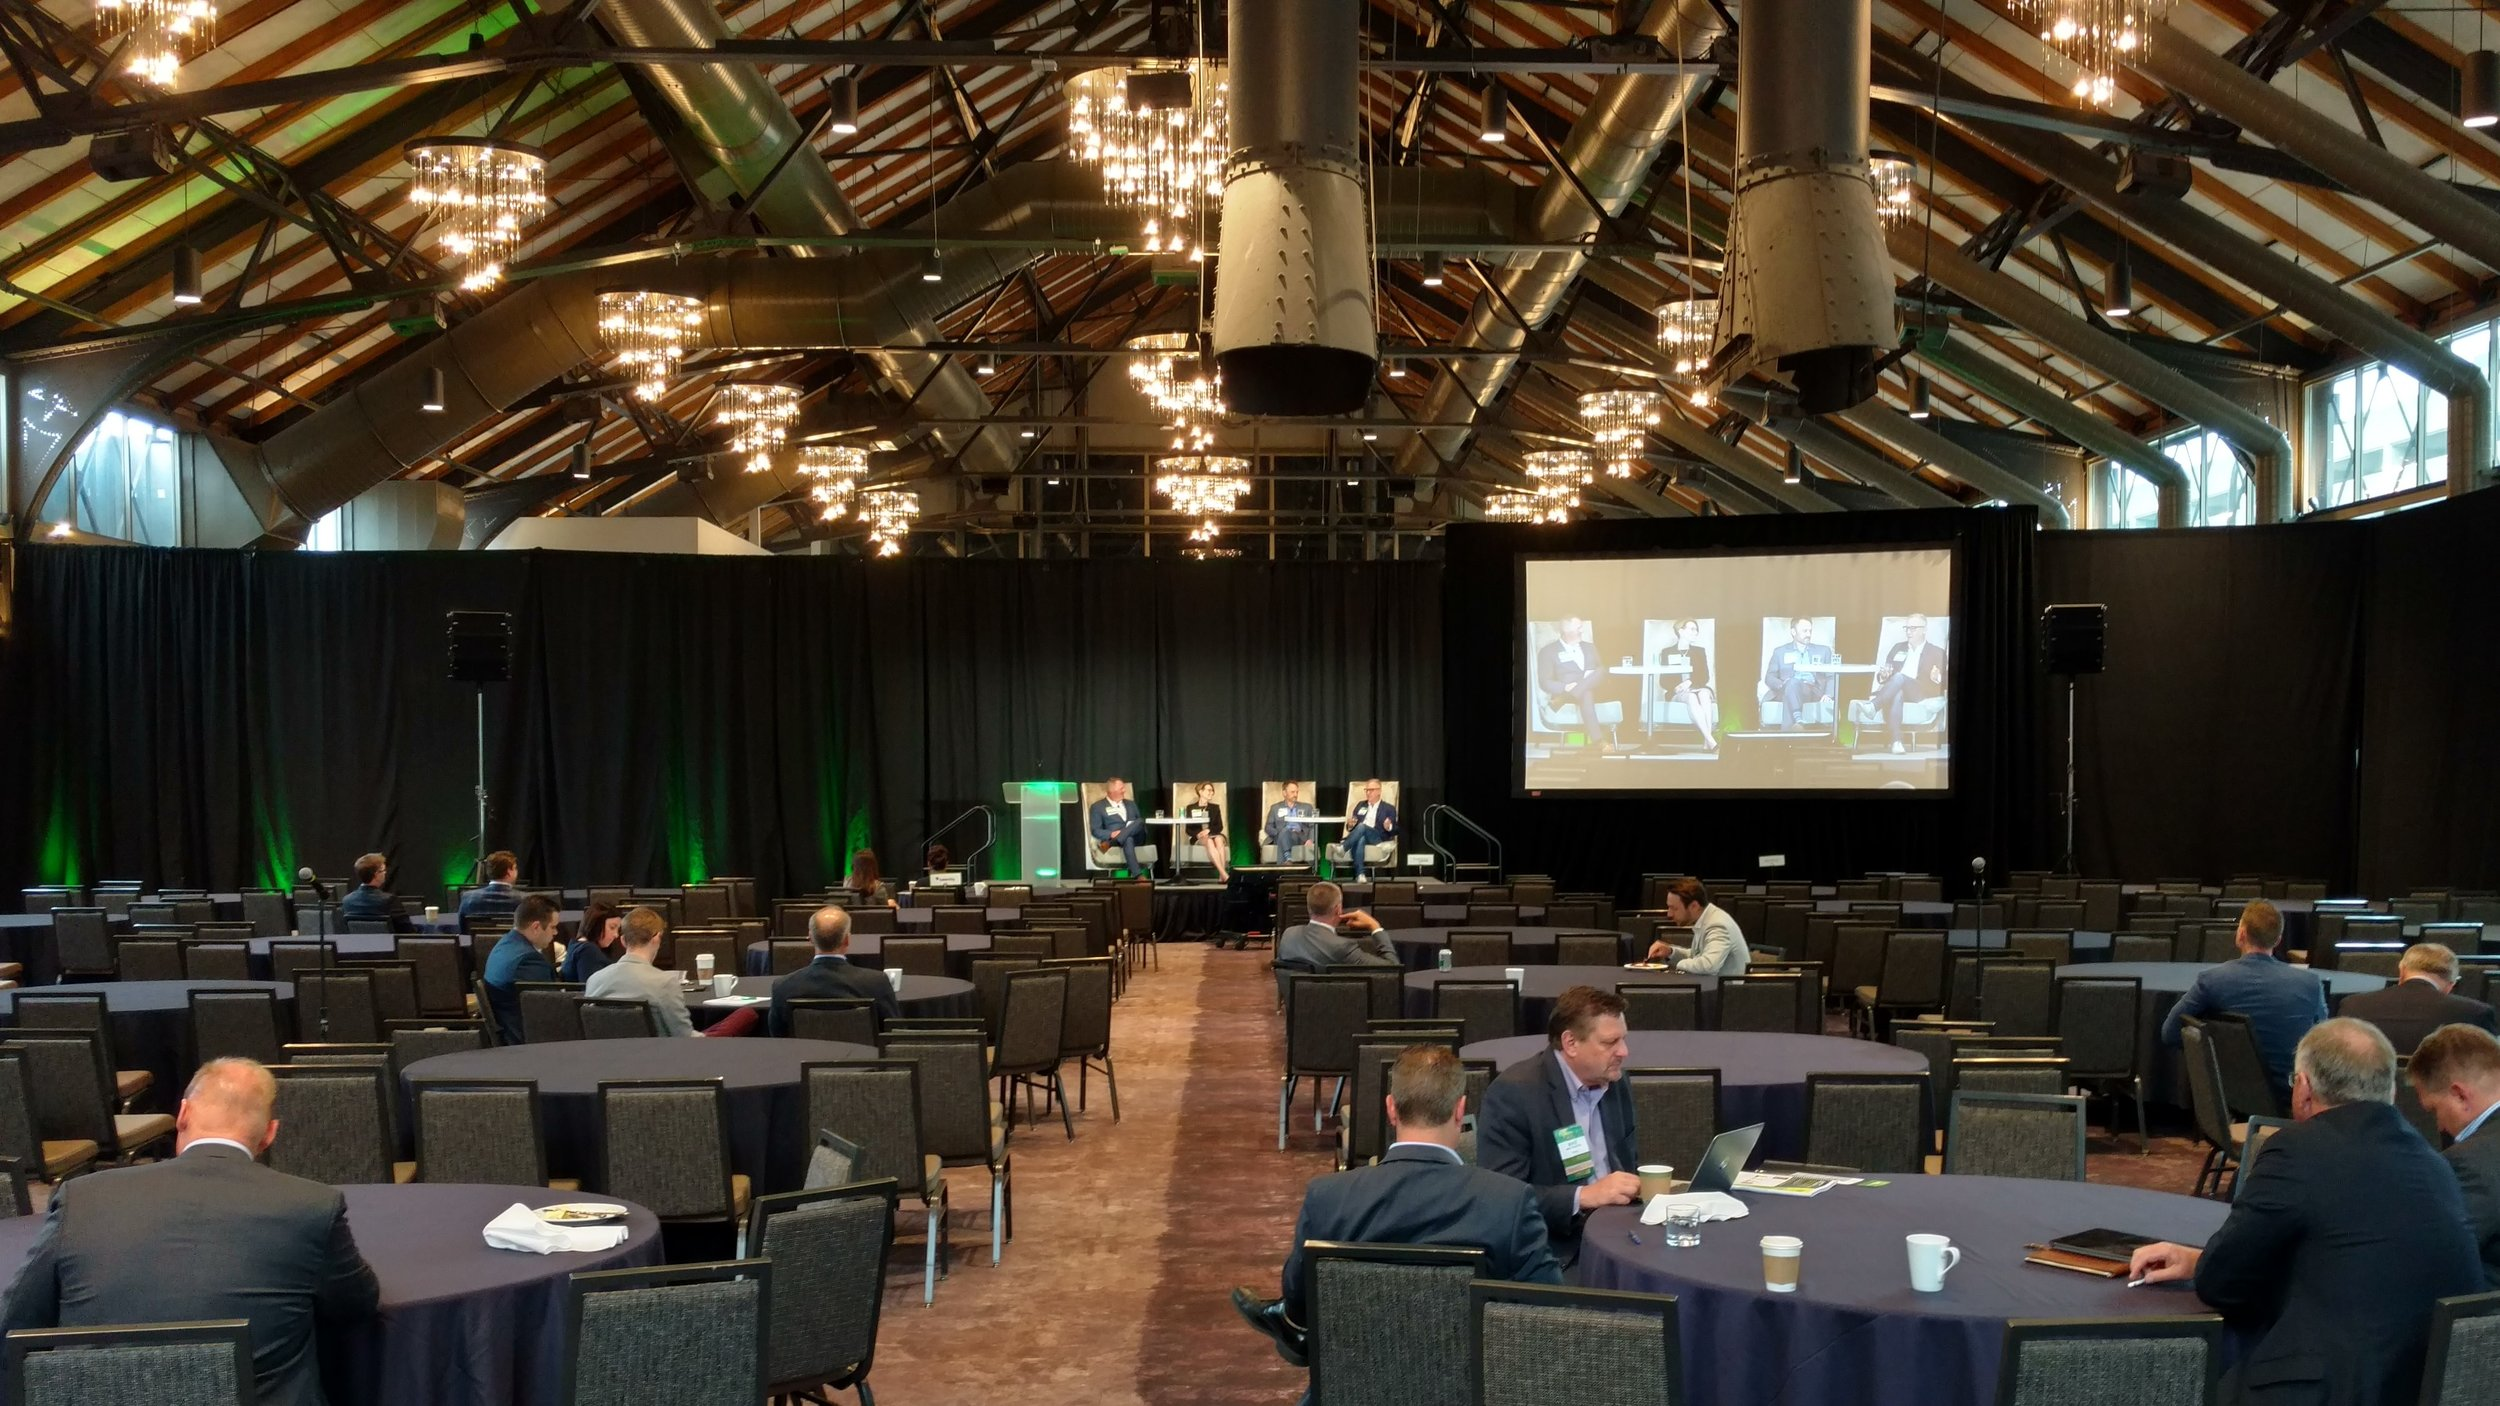 Picture of AV for You Rental Equipment at a corporate conference in The Depot, Minneapolis